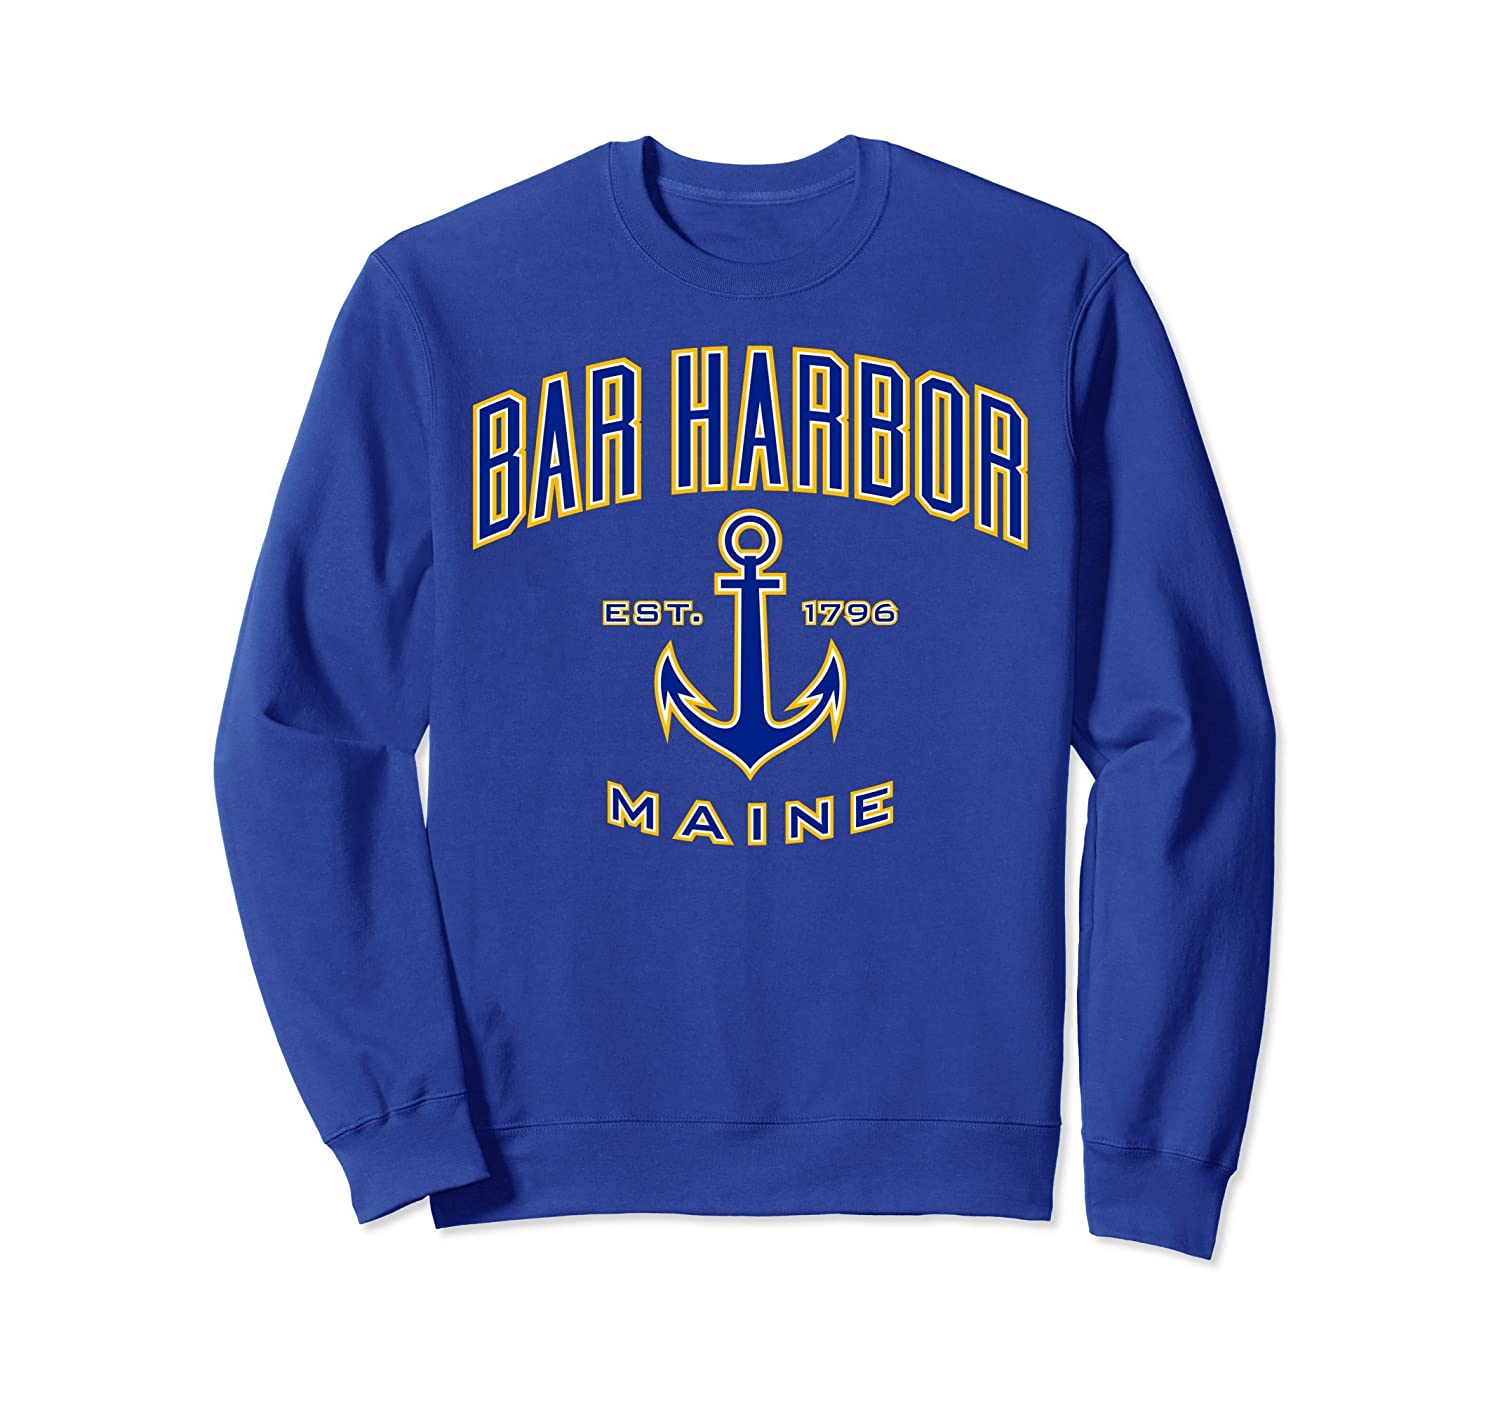 Bar Harbor ME Sweatshirts for Women & Men-mt